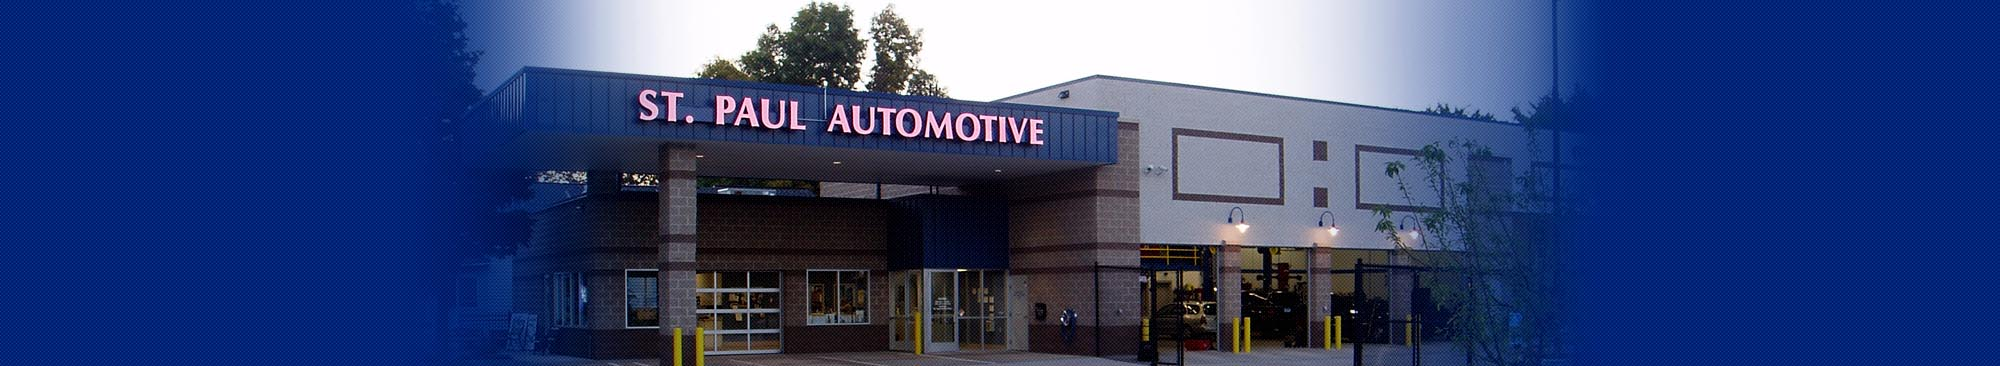 St. Paul Automotive